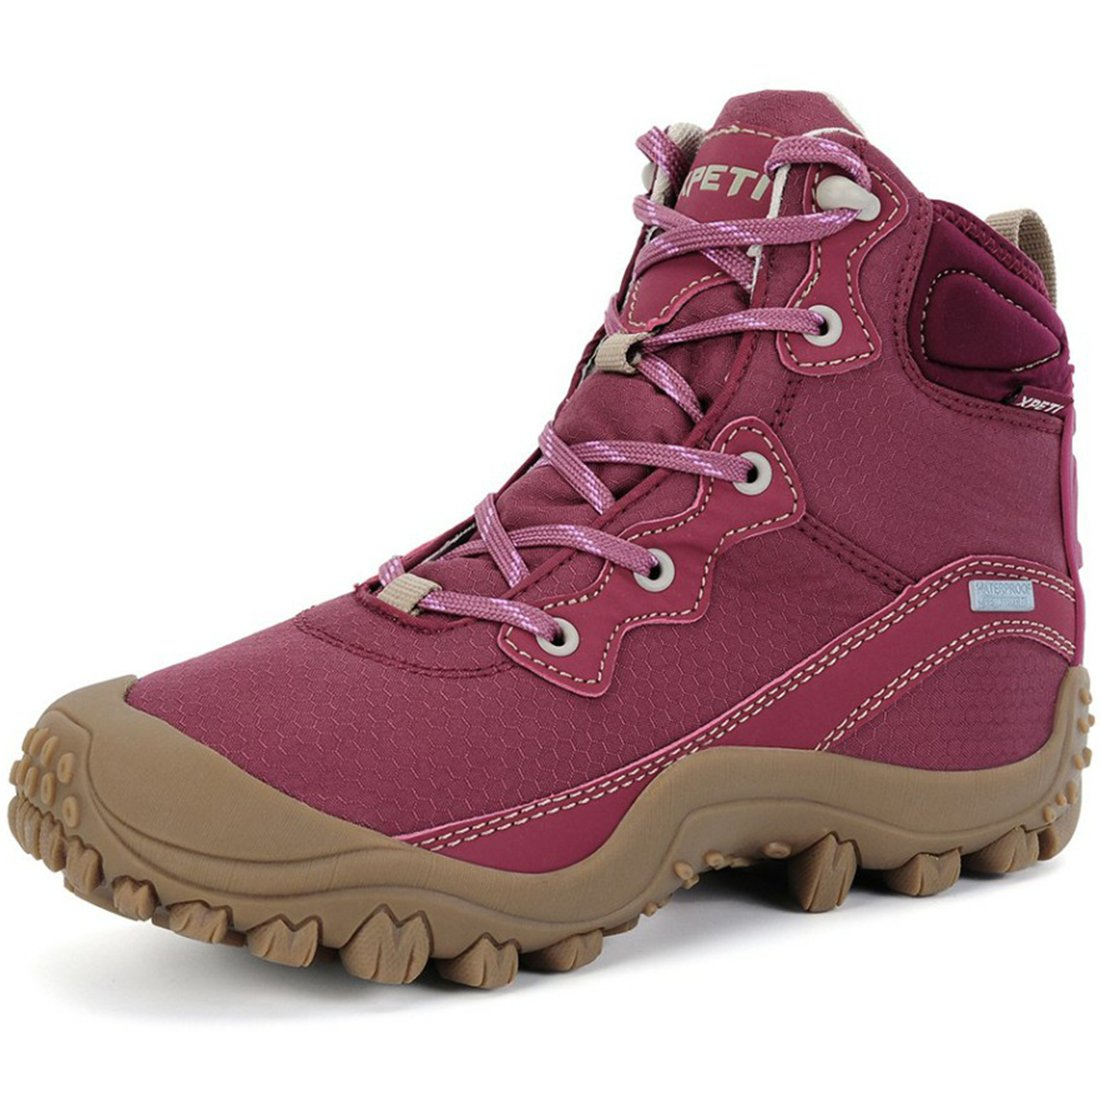 XPETI Women's Dimo Mid Waterproof Hiking Outdoor Boot (10.5 B(M) US, Red Wine) by XPETI